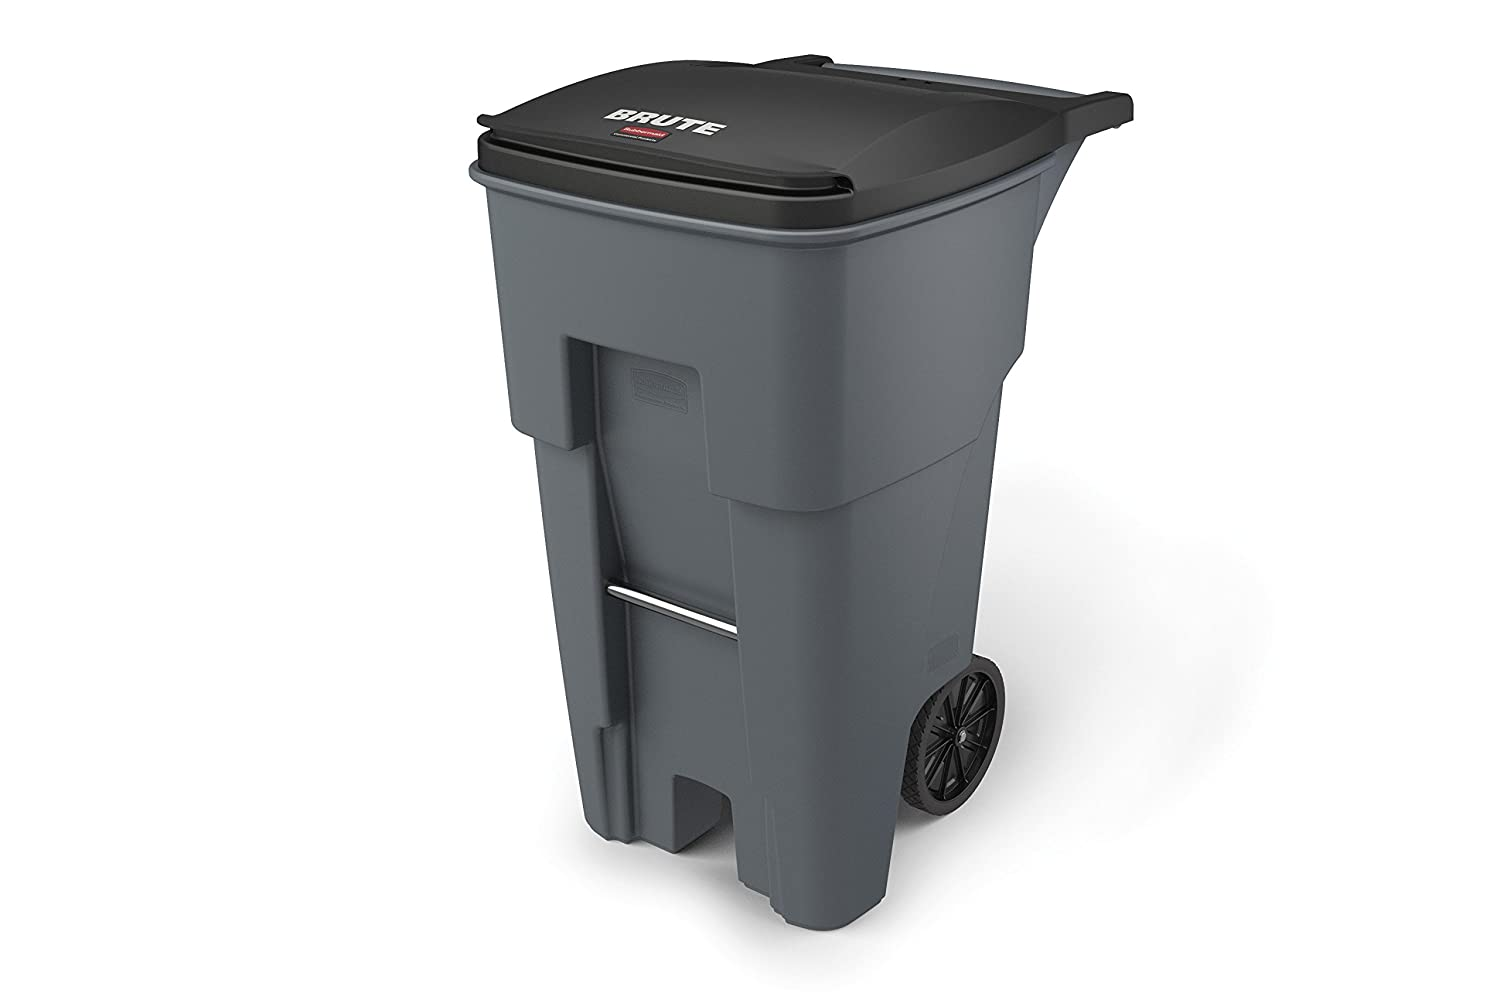 Rubbermaid Commercial 9W21GY Brute Rollout Heavy-Duty Waste Container, Square, Polyethylene, 65gal, Gray FG9W2100GRAY